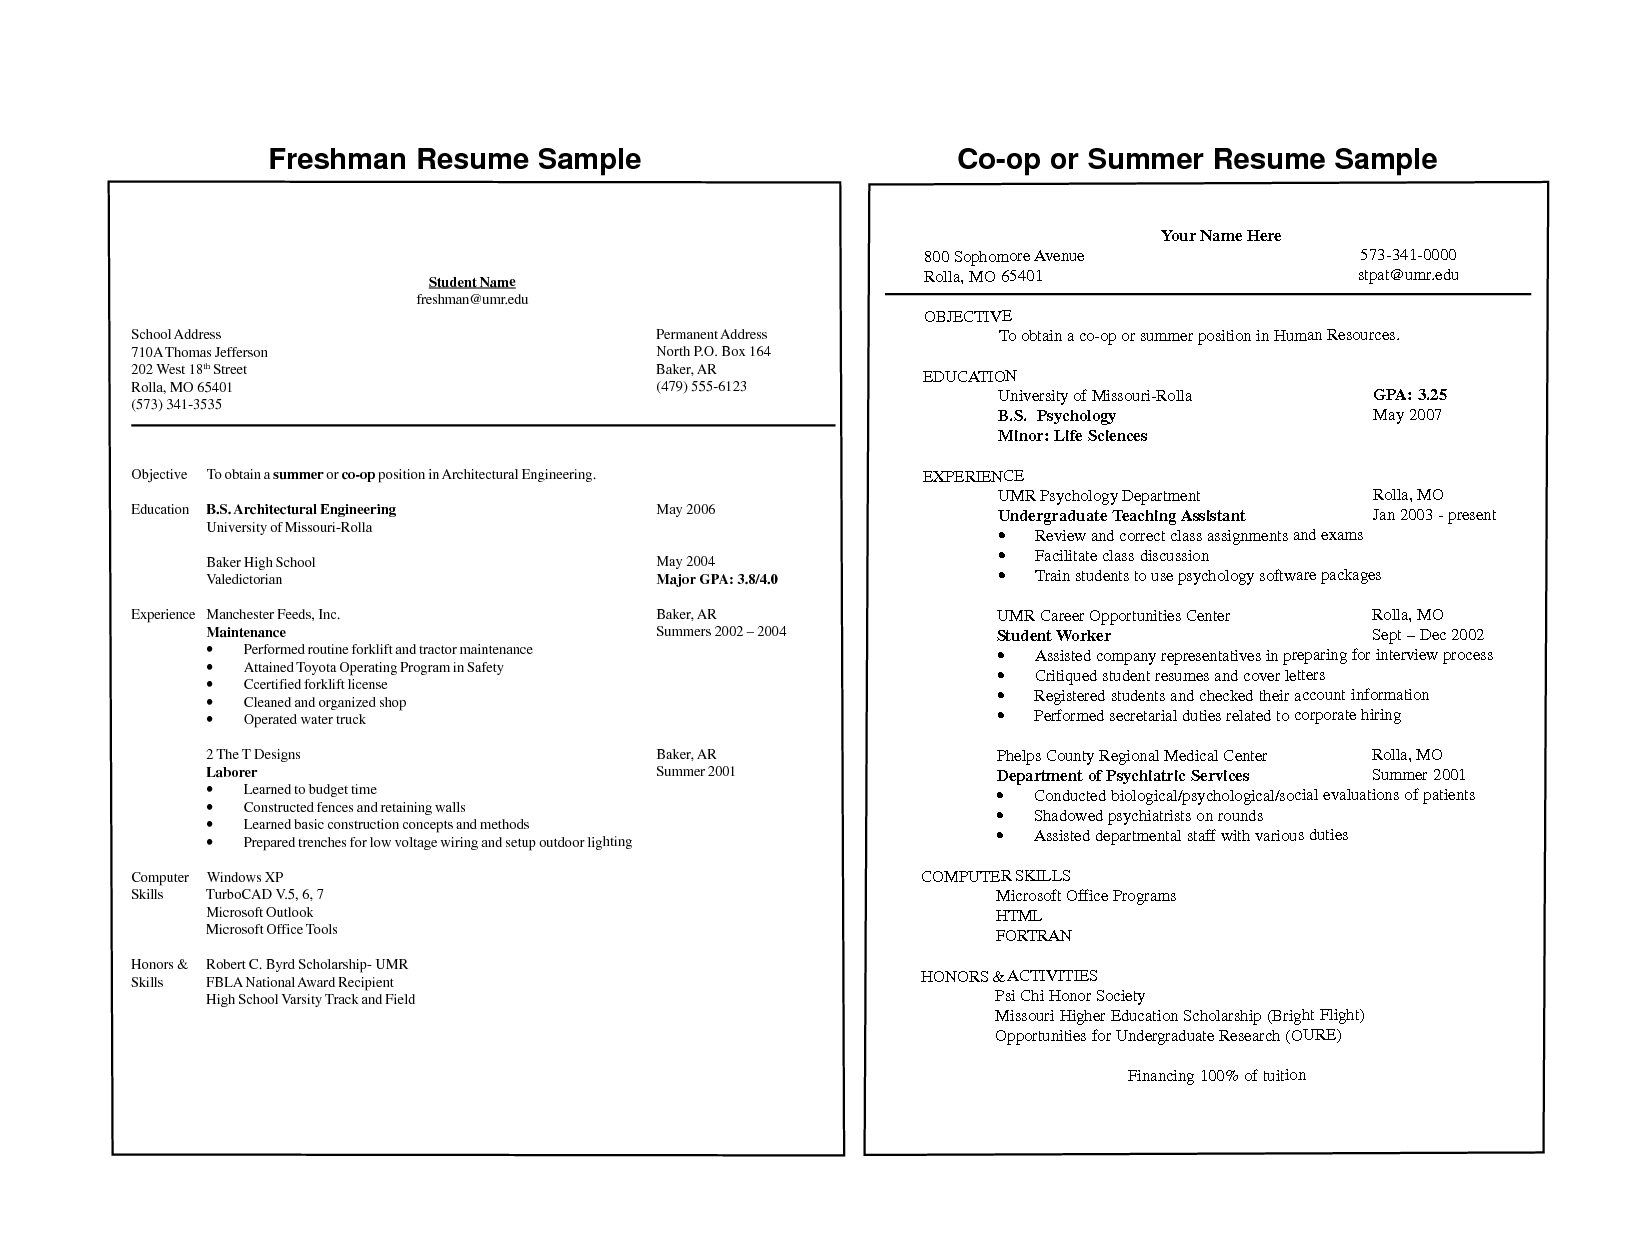 Freshman College Student Resume Examples Templates College Student